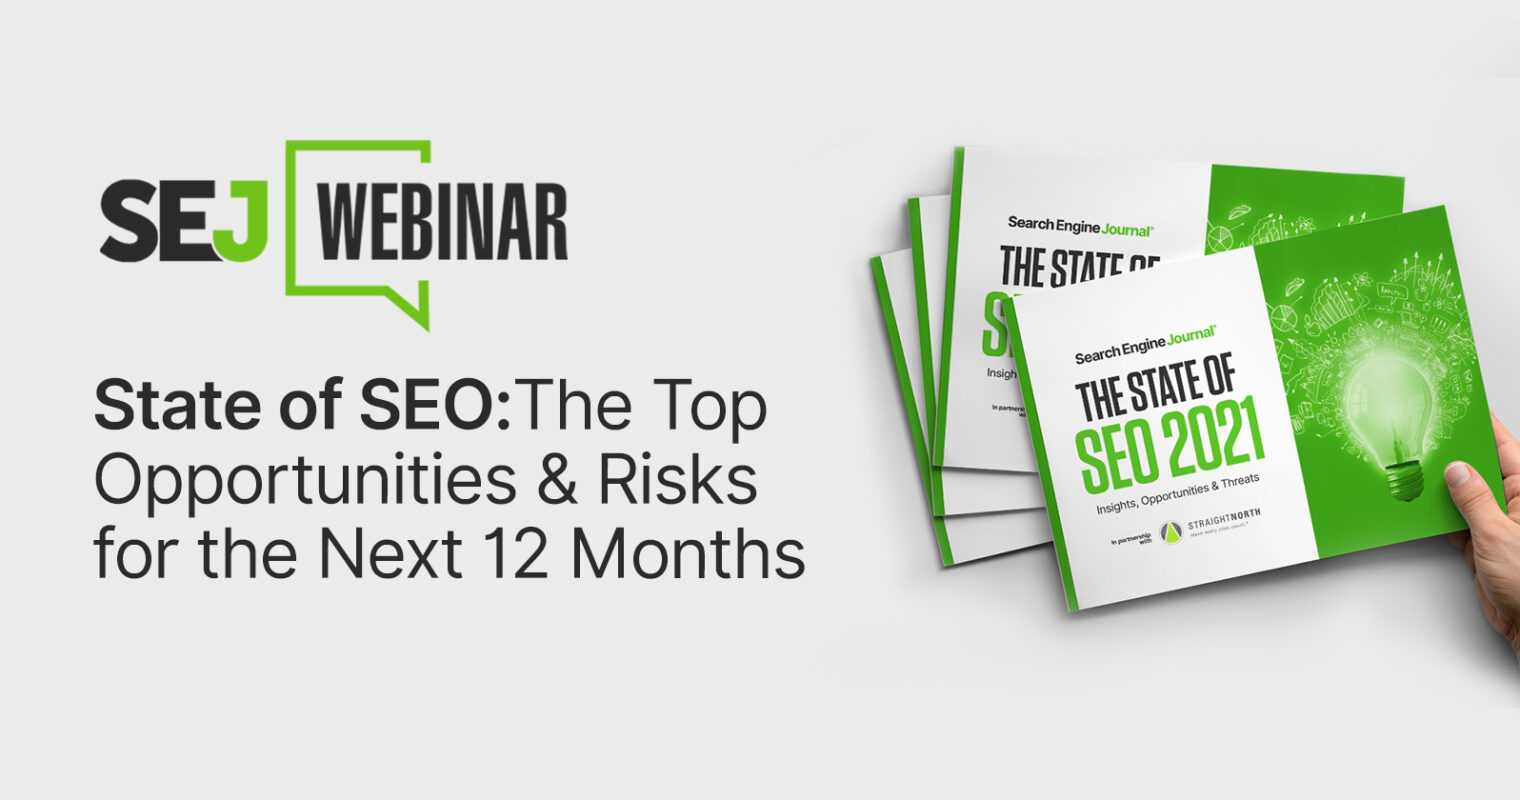 State of SEO: The Top Opportunities & Risks for the Next 12 Months [Webinar]